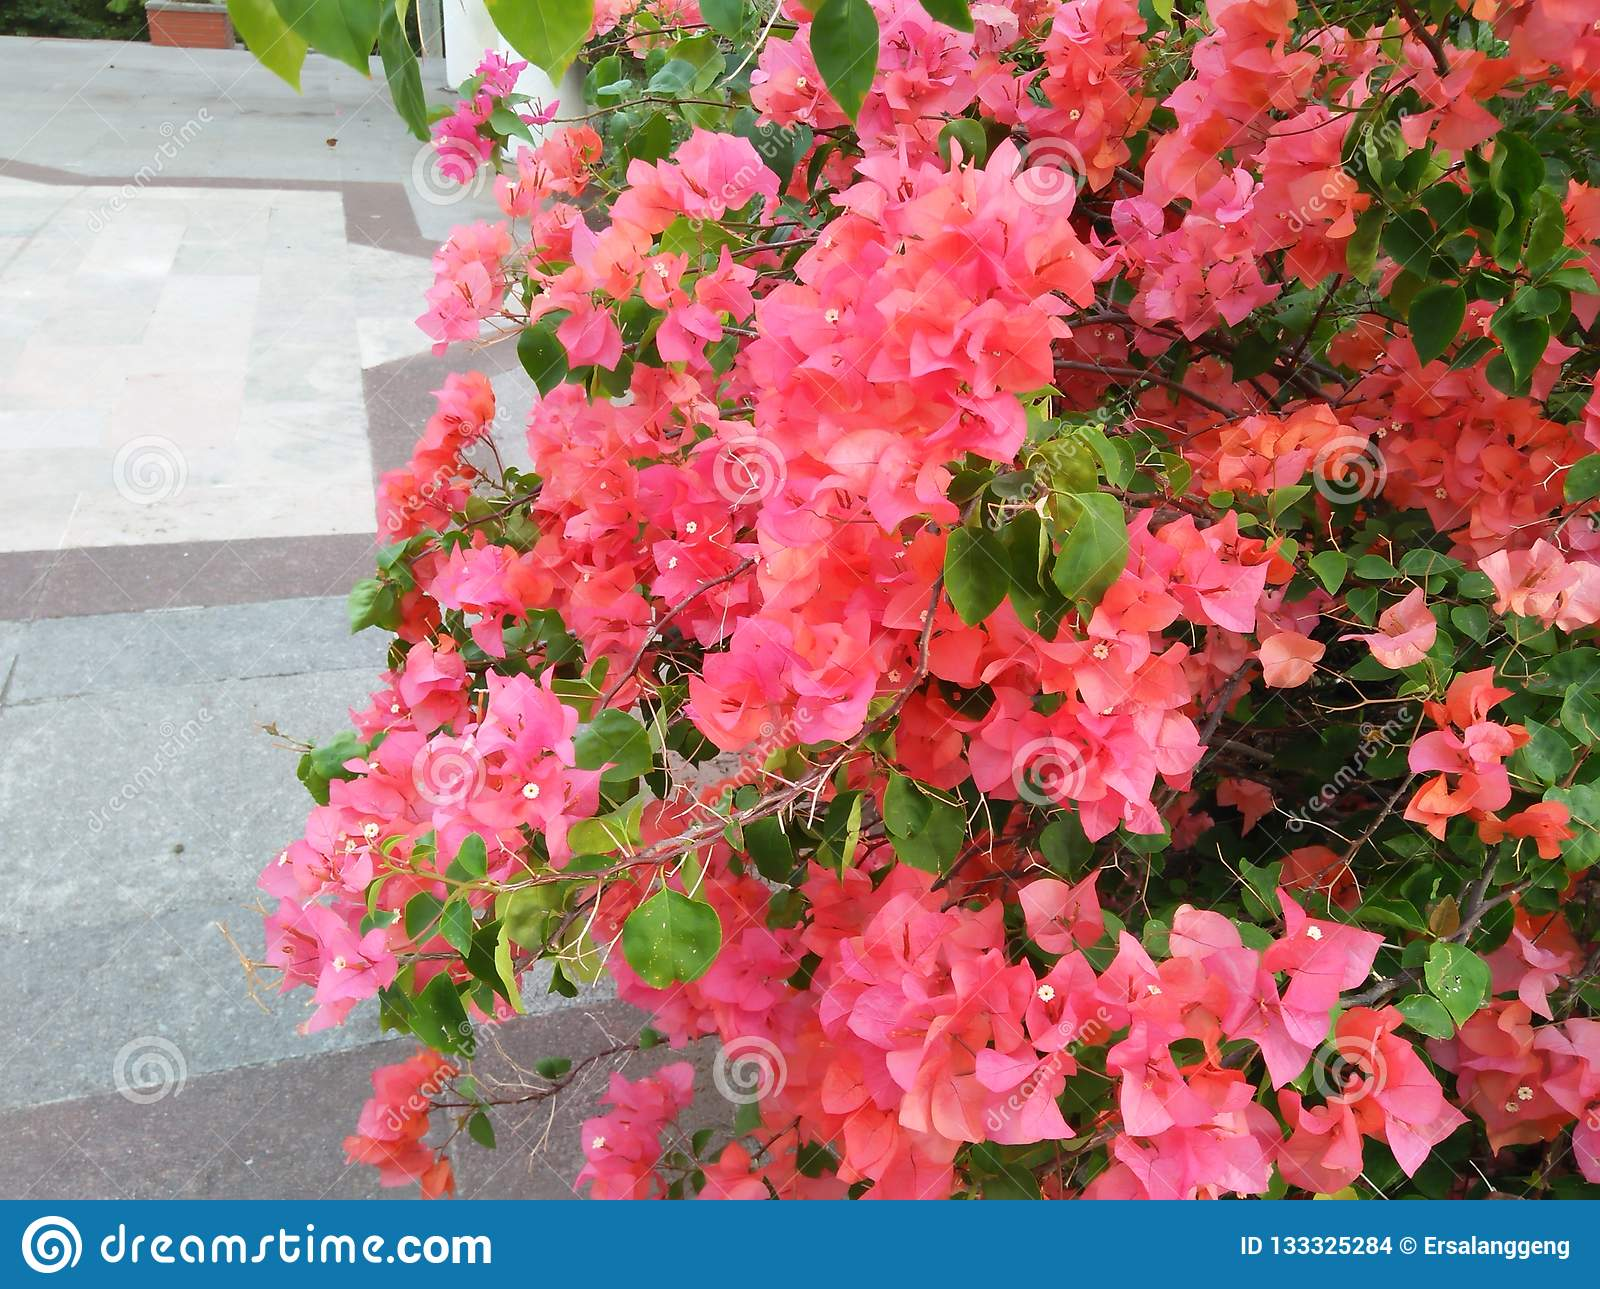 See this flower is very much and charming